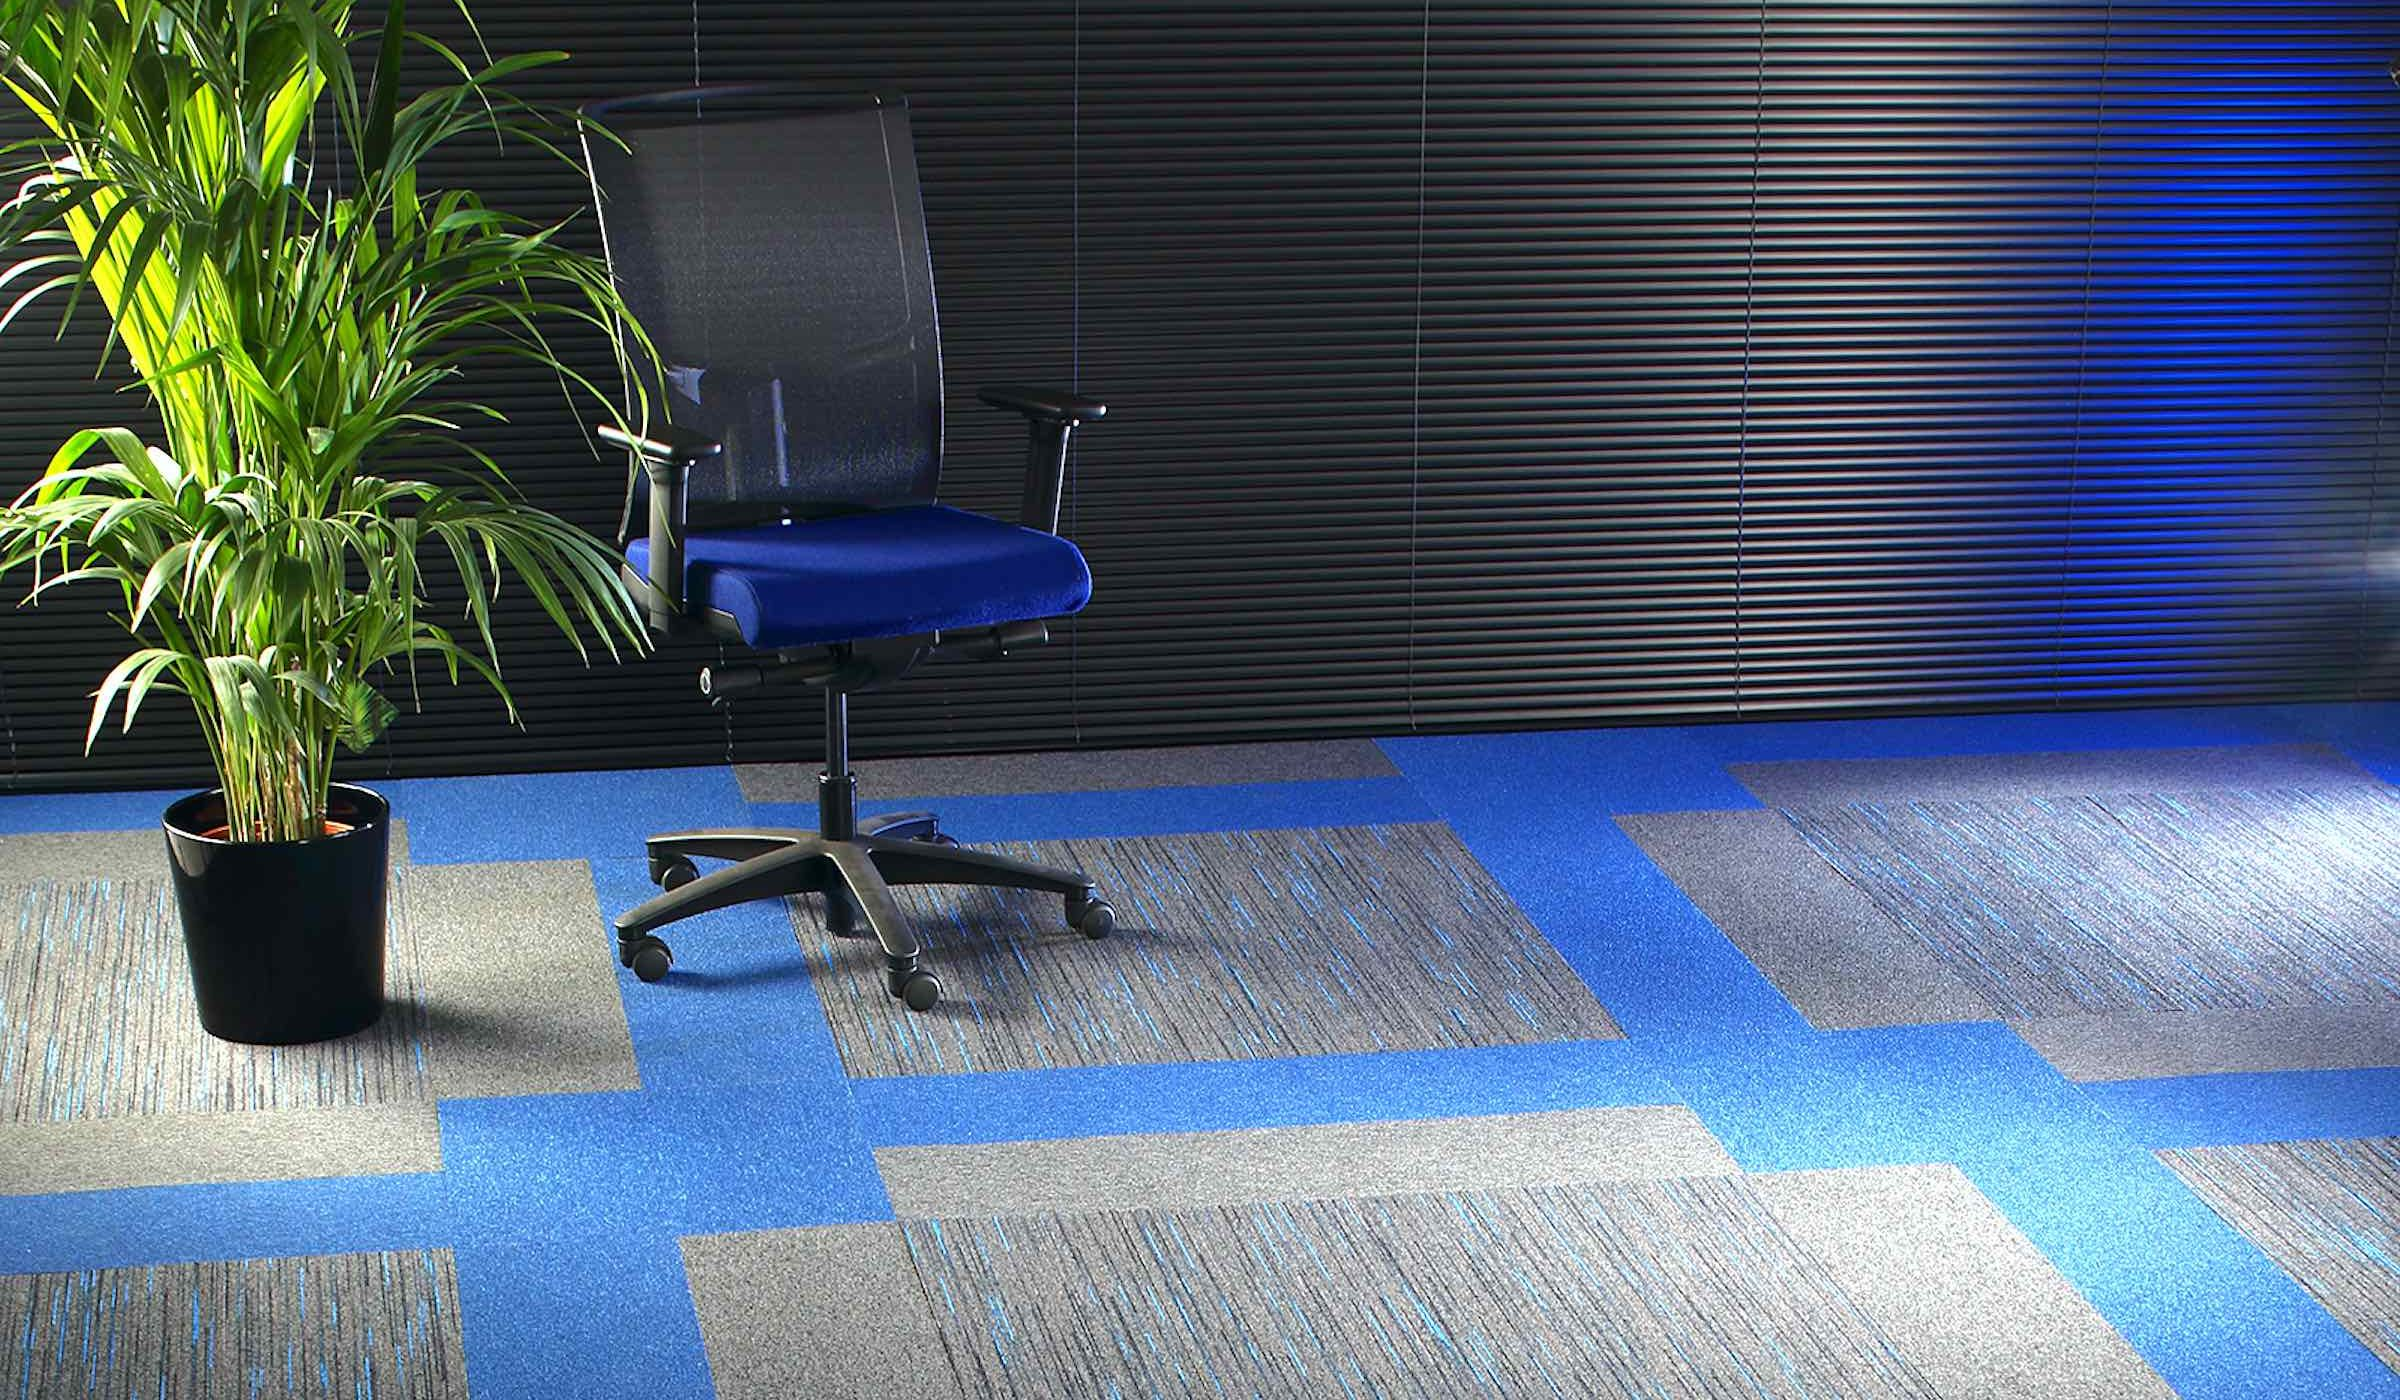 Design Dek | Paragon Carpet Tiles | Commercial Carpet Tiles | Design Carpet Tiles 1